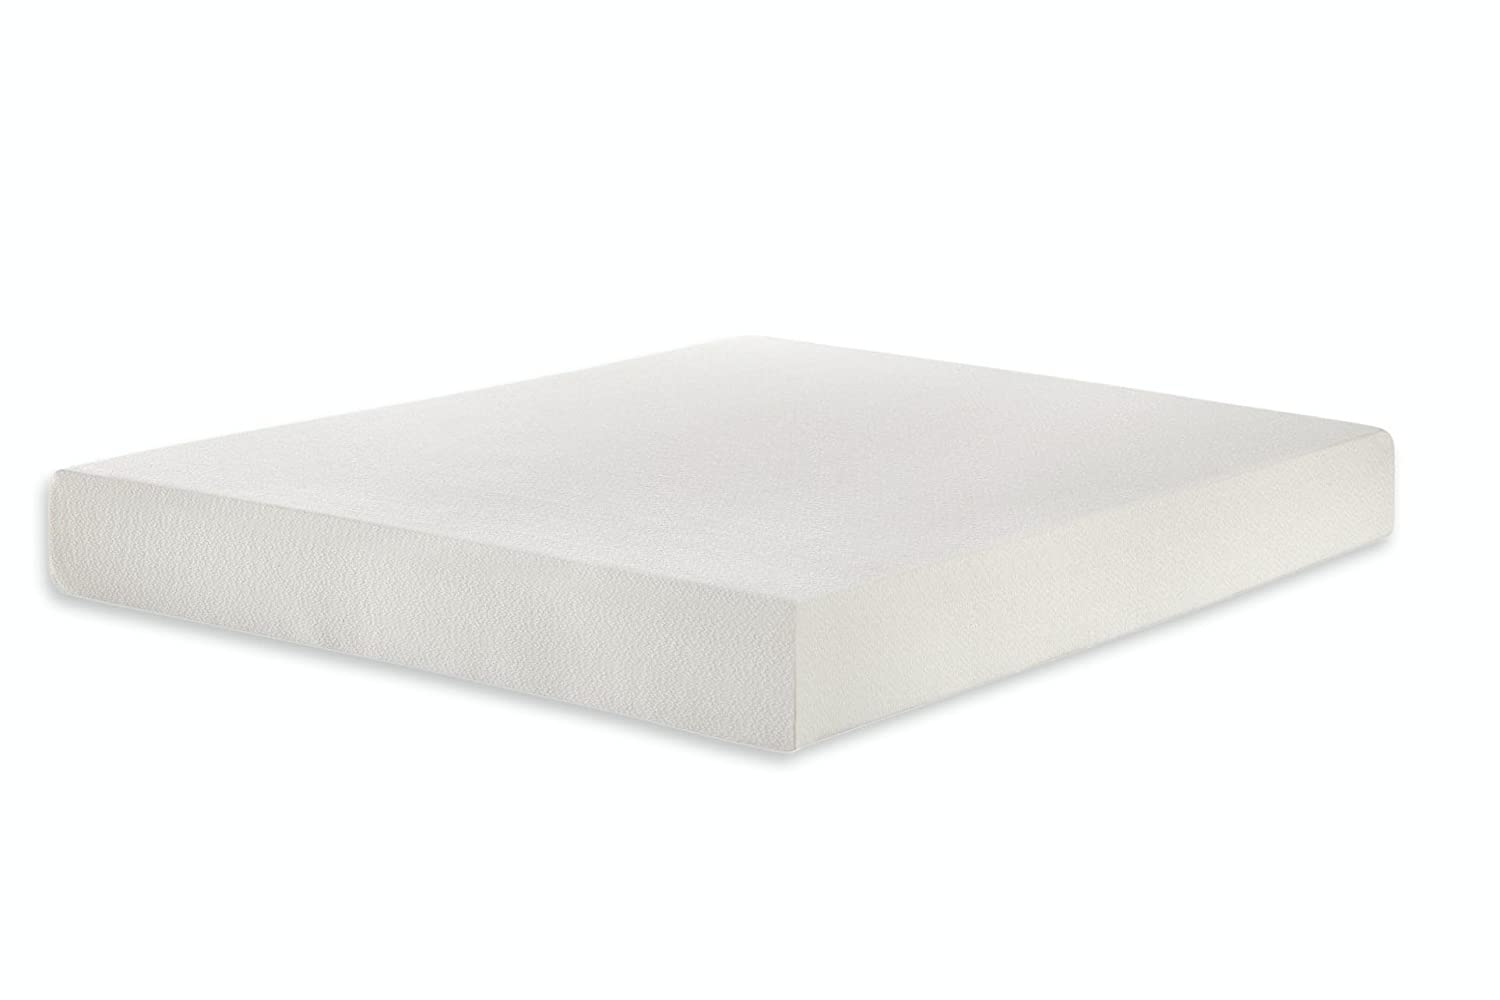 Signature Sleep 8 Inch Memory Foam Mattress Full Ireviewable